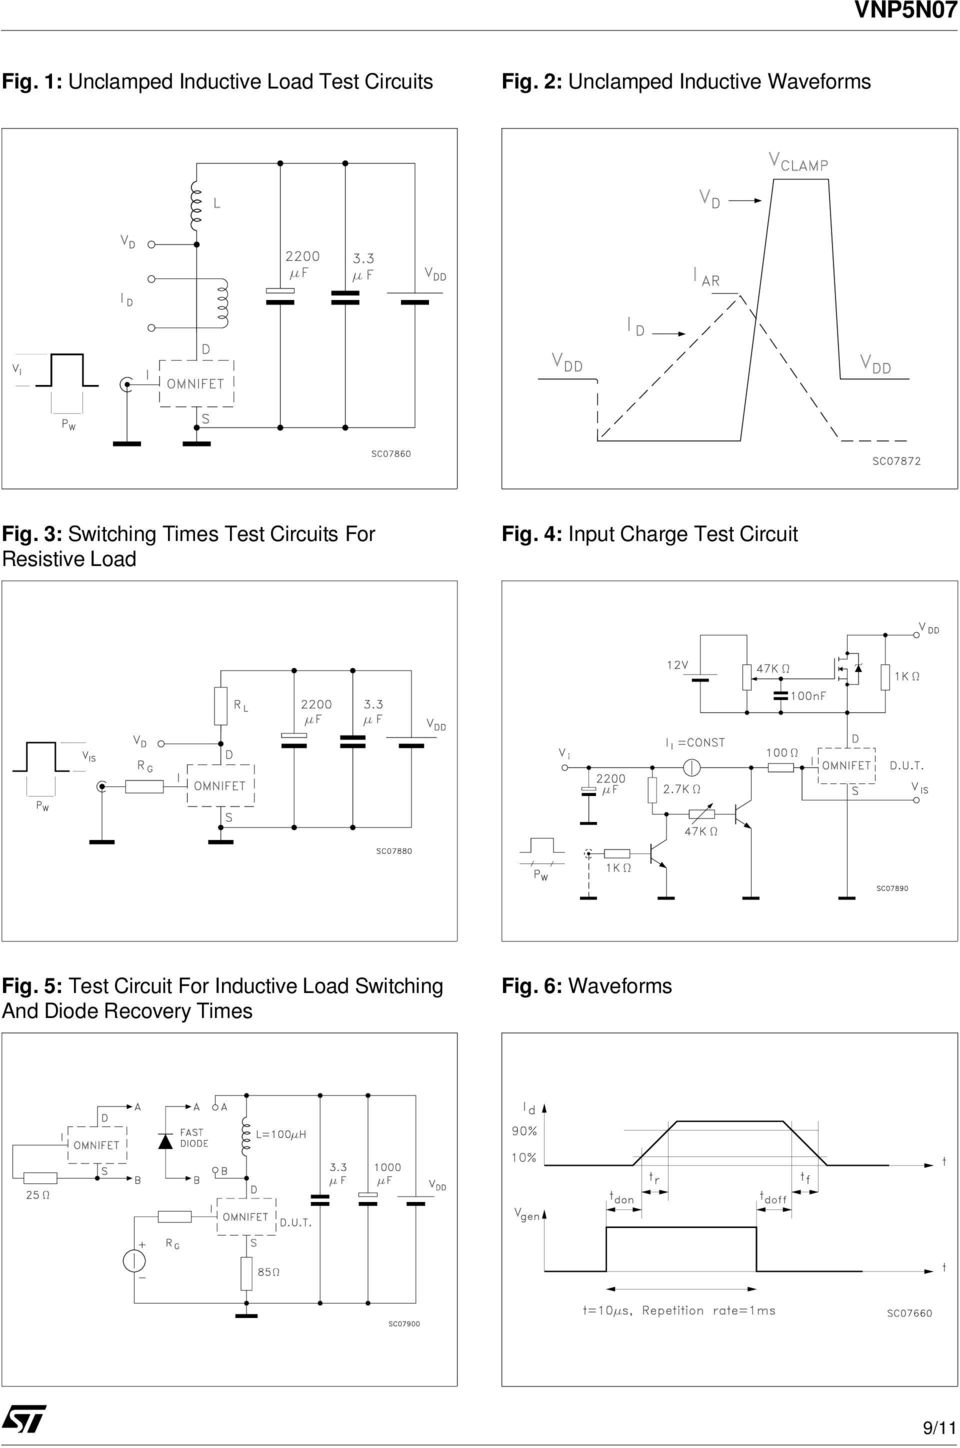 Vnp5n07 Omnifet Fully Autoprotected Power Mosfet Pdf Pushpull Darlington Amplifier Circuit Diagram Tradeoficcom 3 Switching Times Test Circuits For Resistive Load Fig